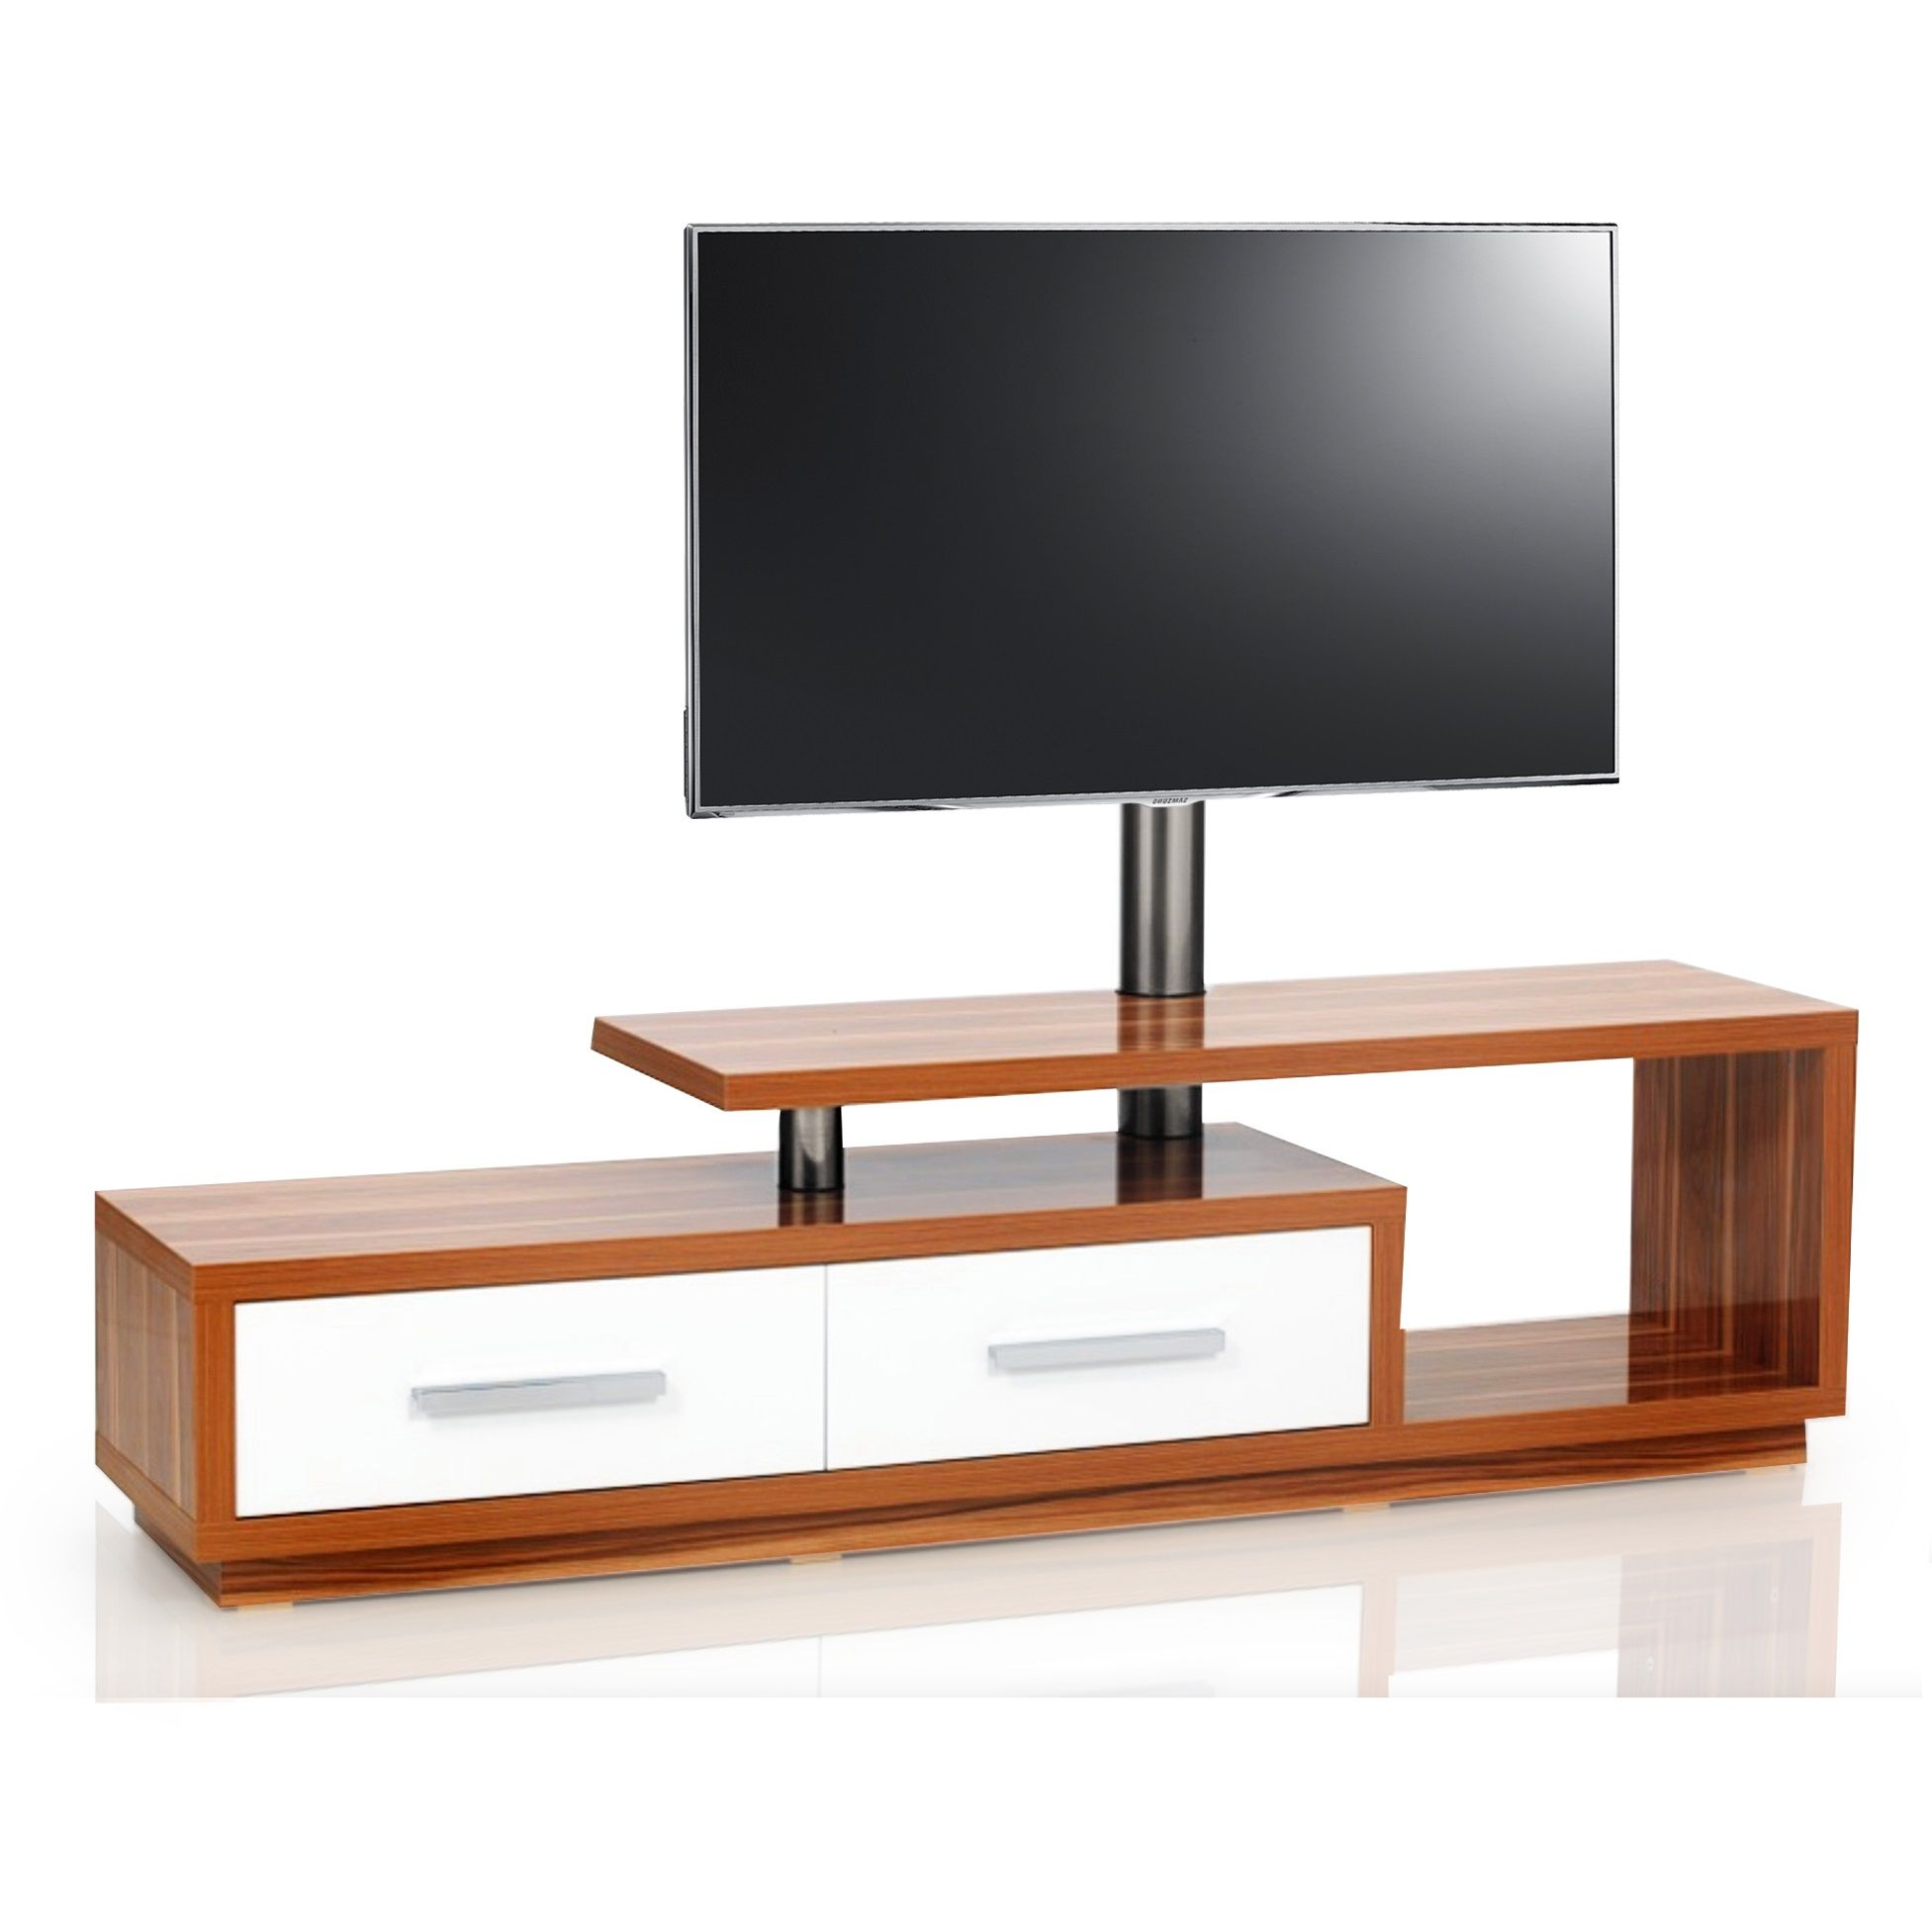 Table Pour Tv Plasma En Bois - Stunning Tables De Television Contemporary Joshkrajcik Us [mjhdah]http://www.maisonjoffrois.fr/wp-content/uploads/2017/08/meuble-tv-design-bois-massif-lagos-135-cm-1.jpg